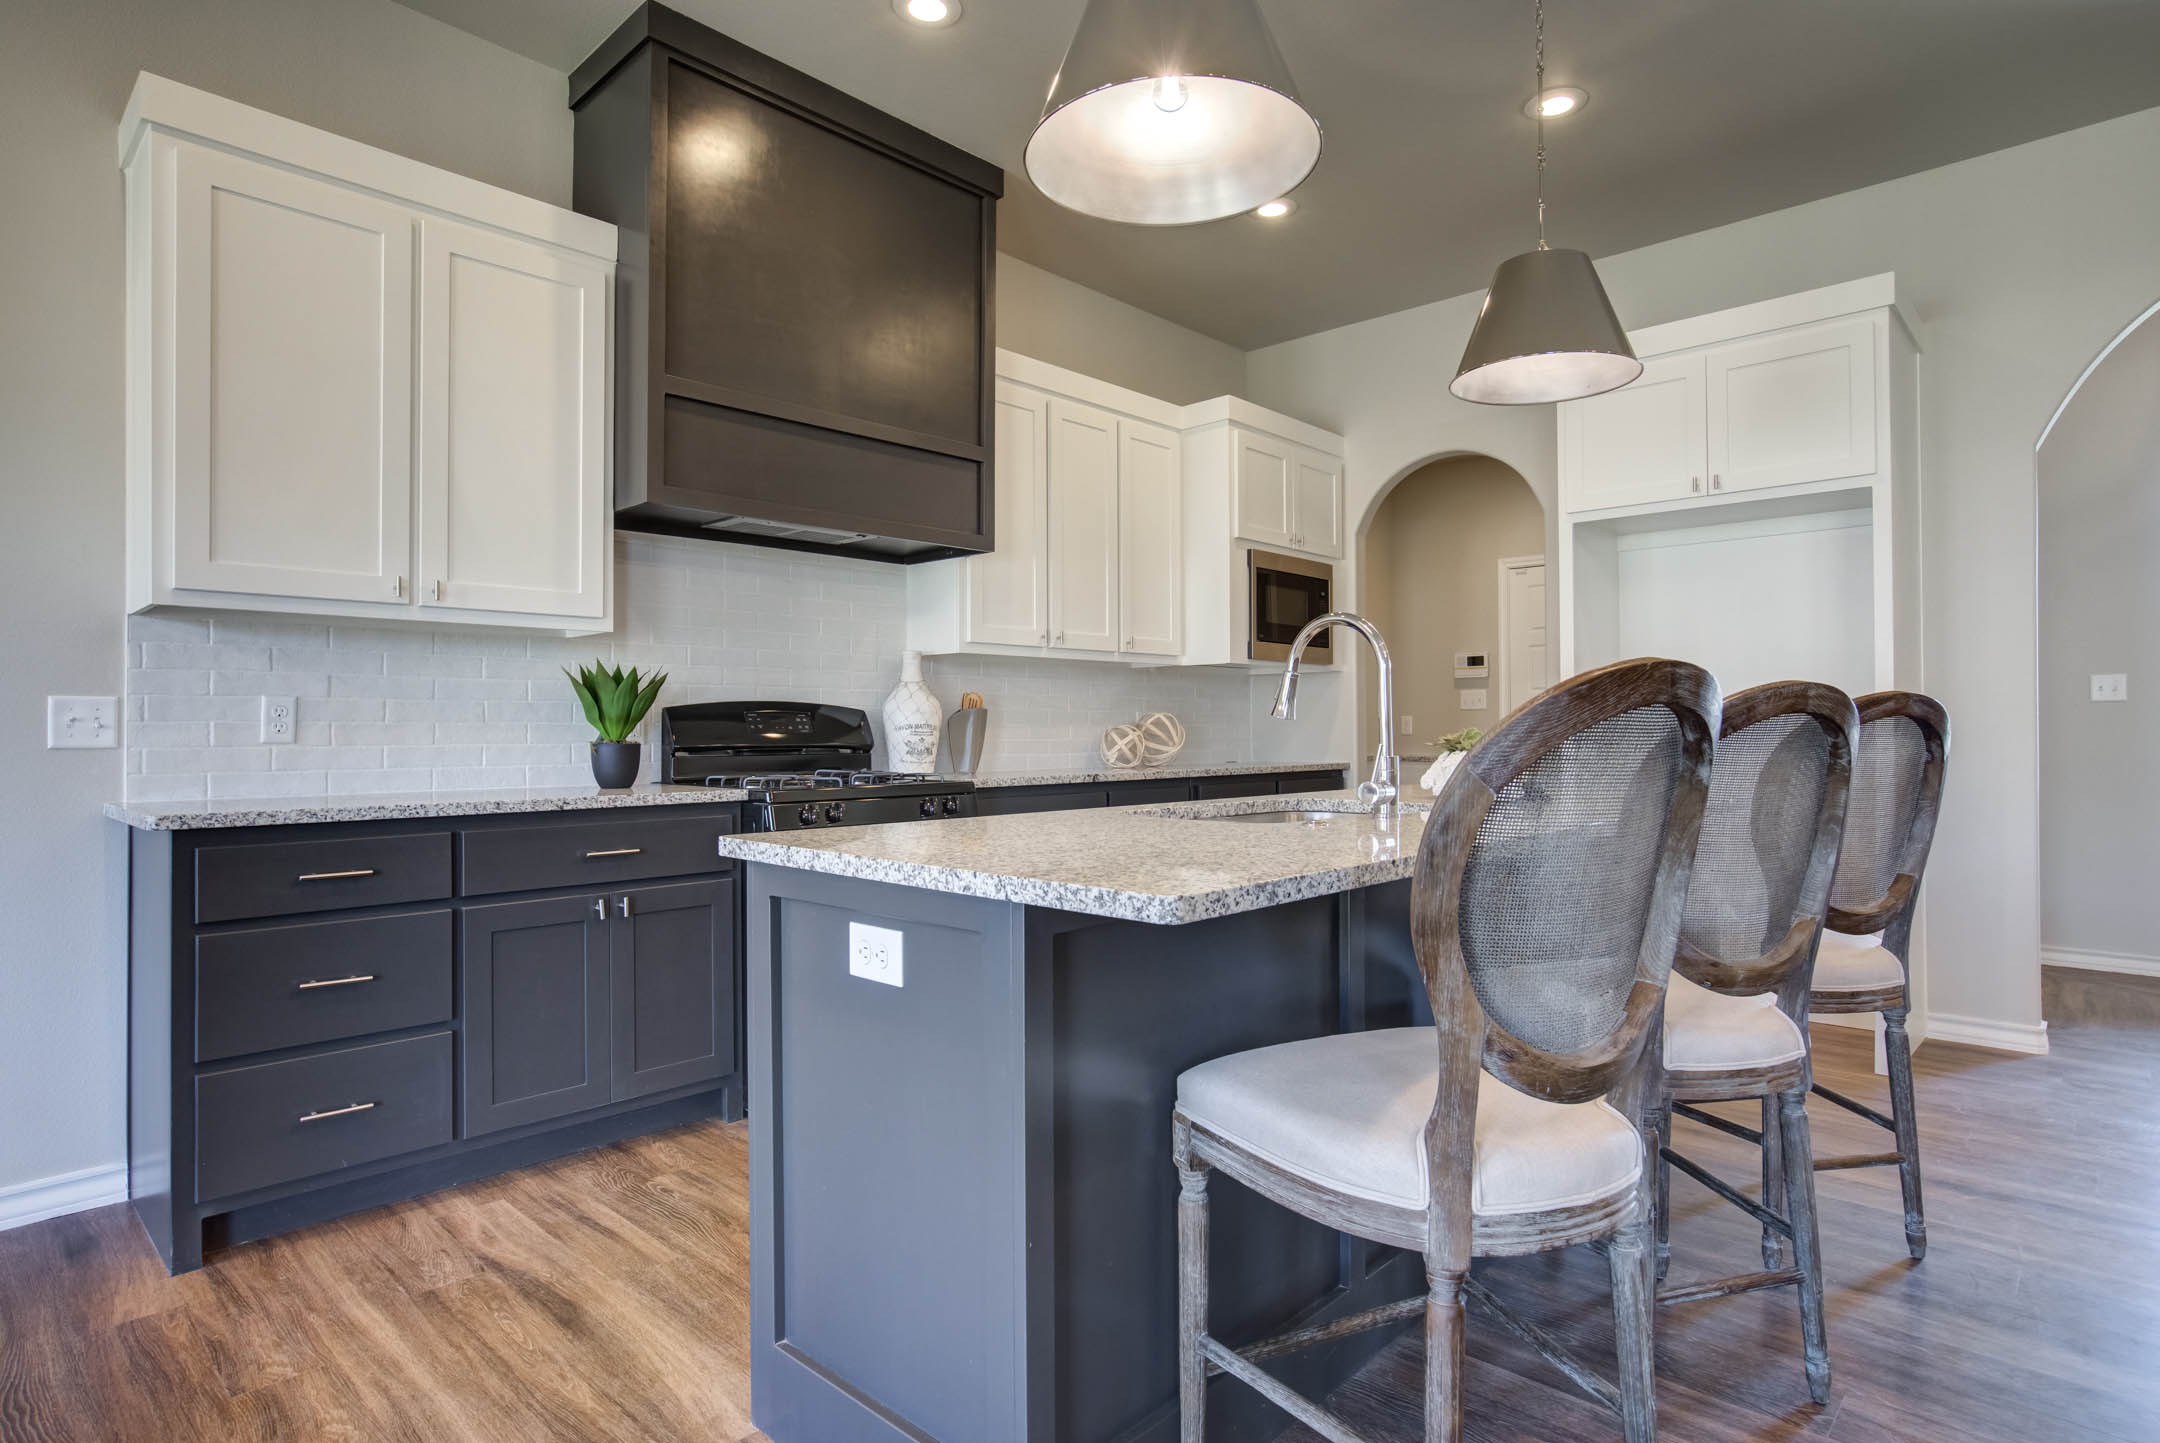 Bar island of kitchen in new home for sale in Lubbock, Texas.